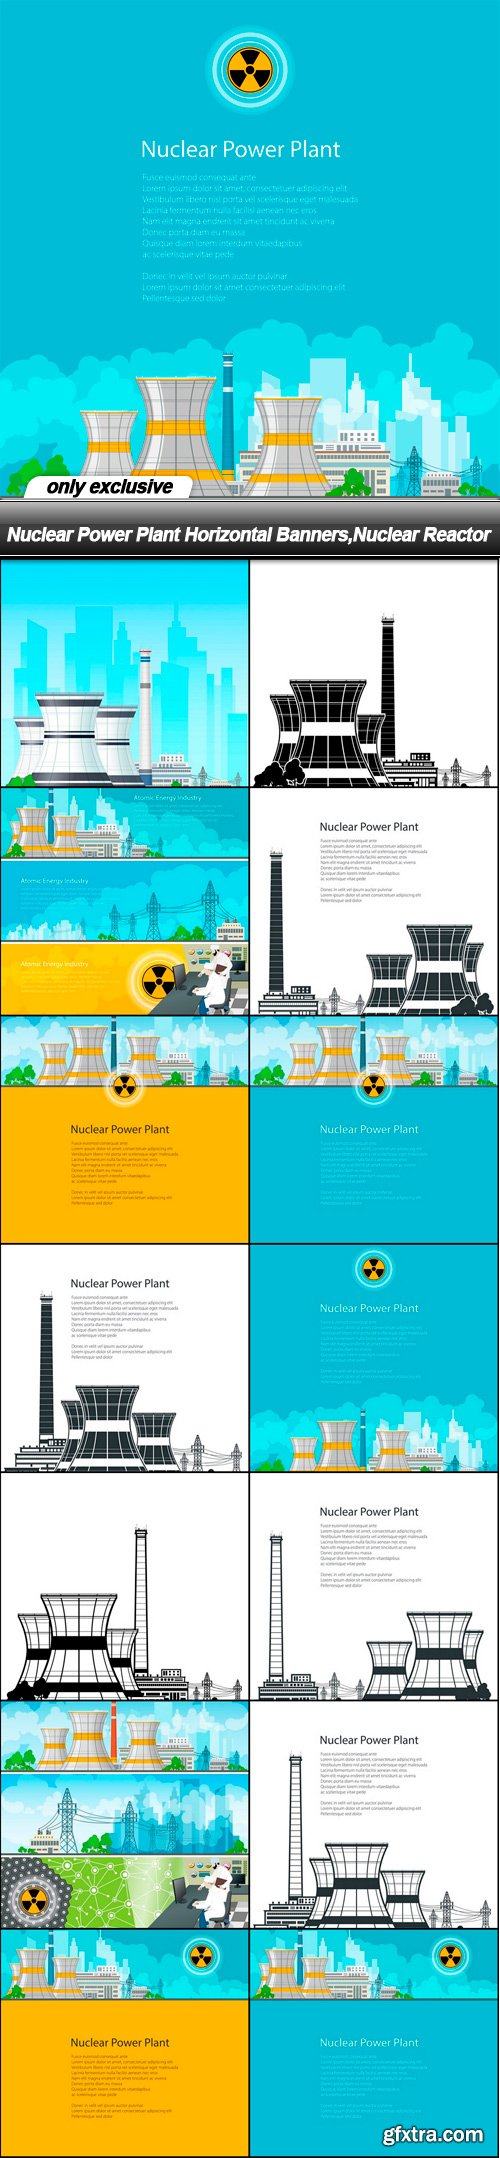 Nuclear Power Plant Horizontal Banners,Nuclear Reactor - 14 EPS